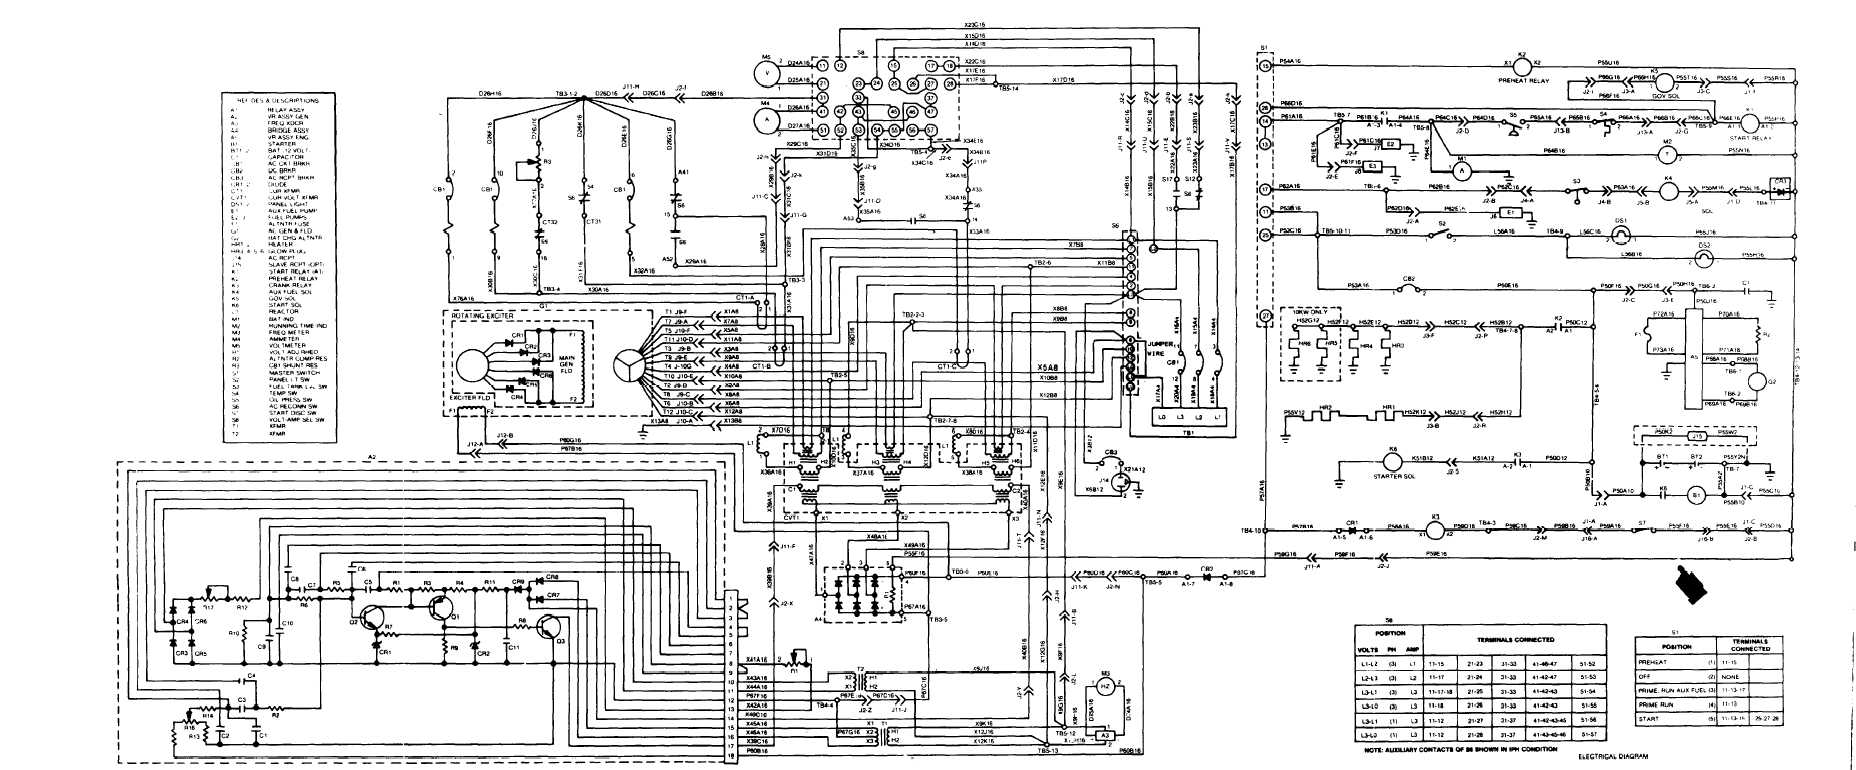 generator wiring schematic circuit diagram symbols u2022 rh veturecapitaltrust co wiring schematic tool wiring schematic alternator 2004 murano